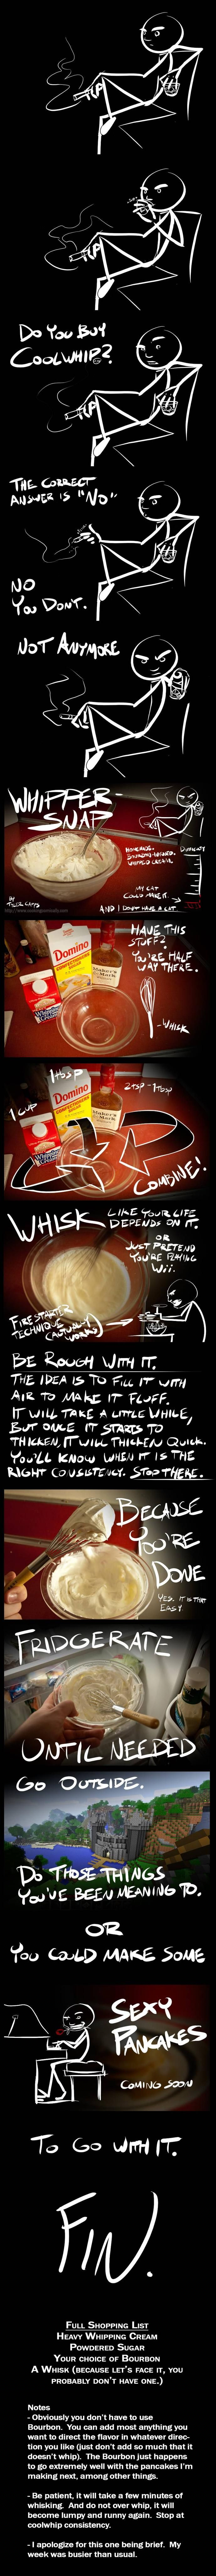 Comically Cooking - Whippersnap Homemade Bourbon-Infused Whipped Cream